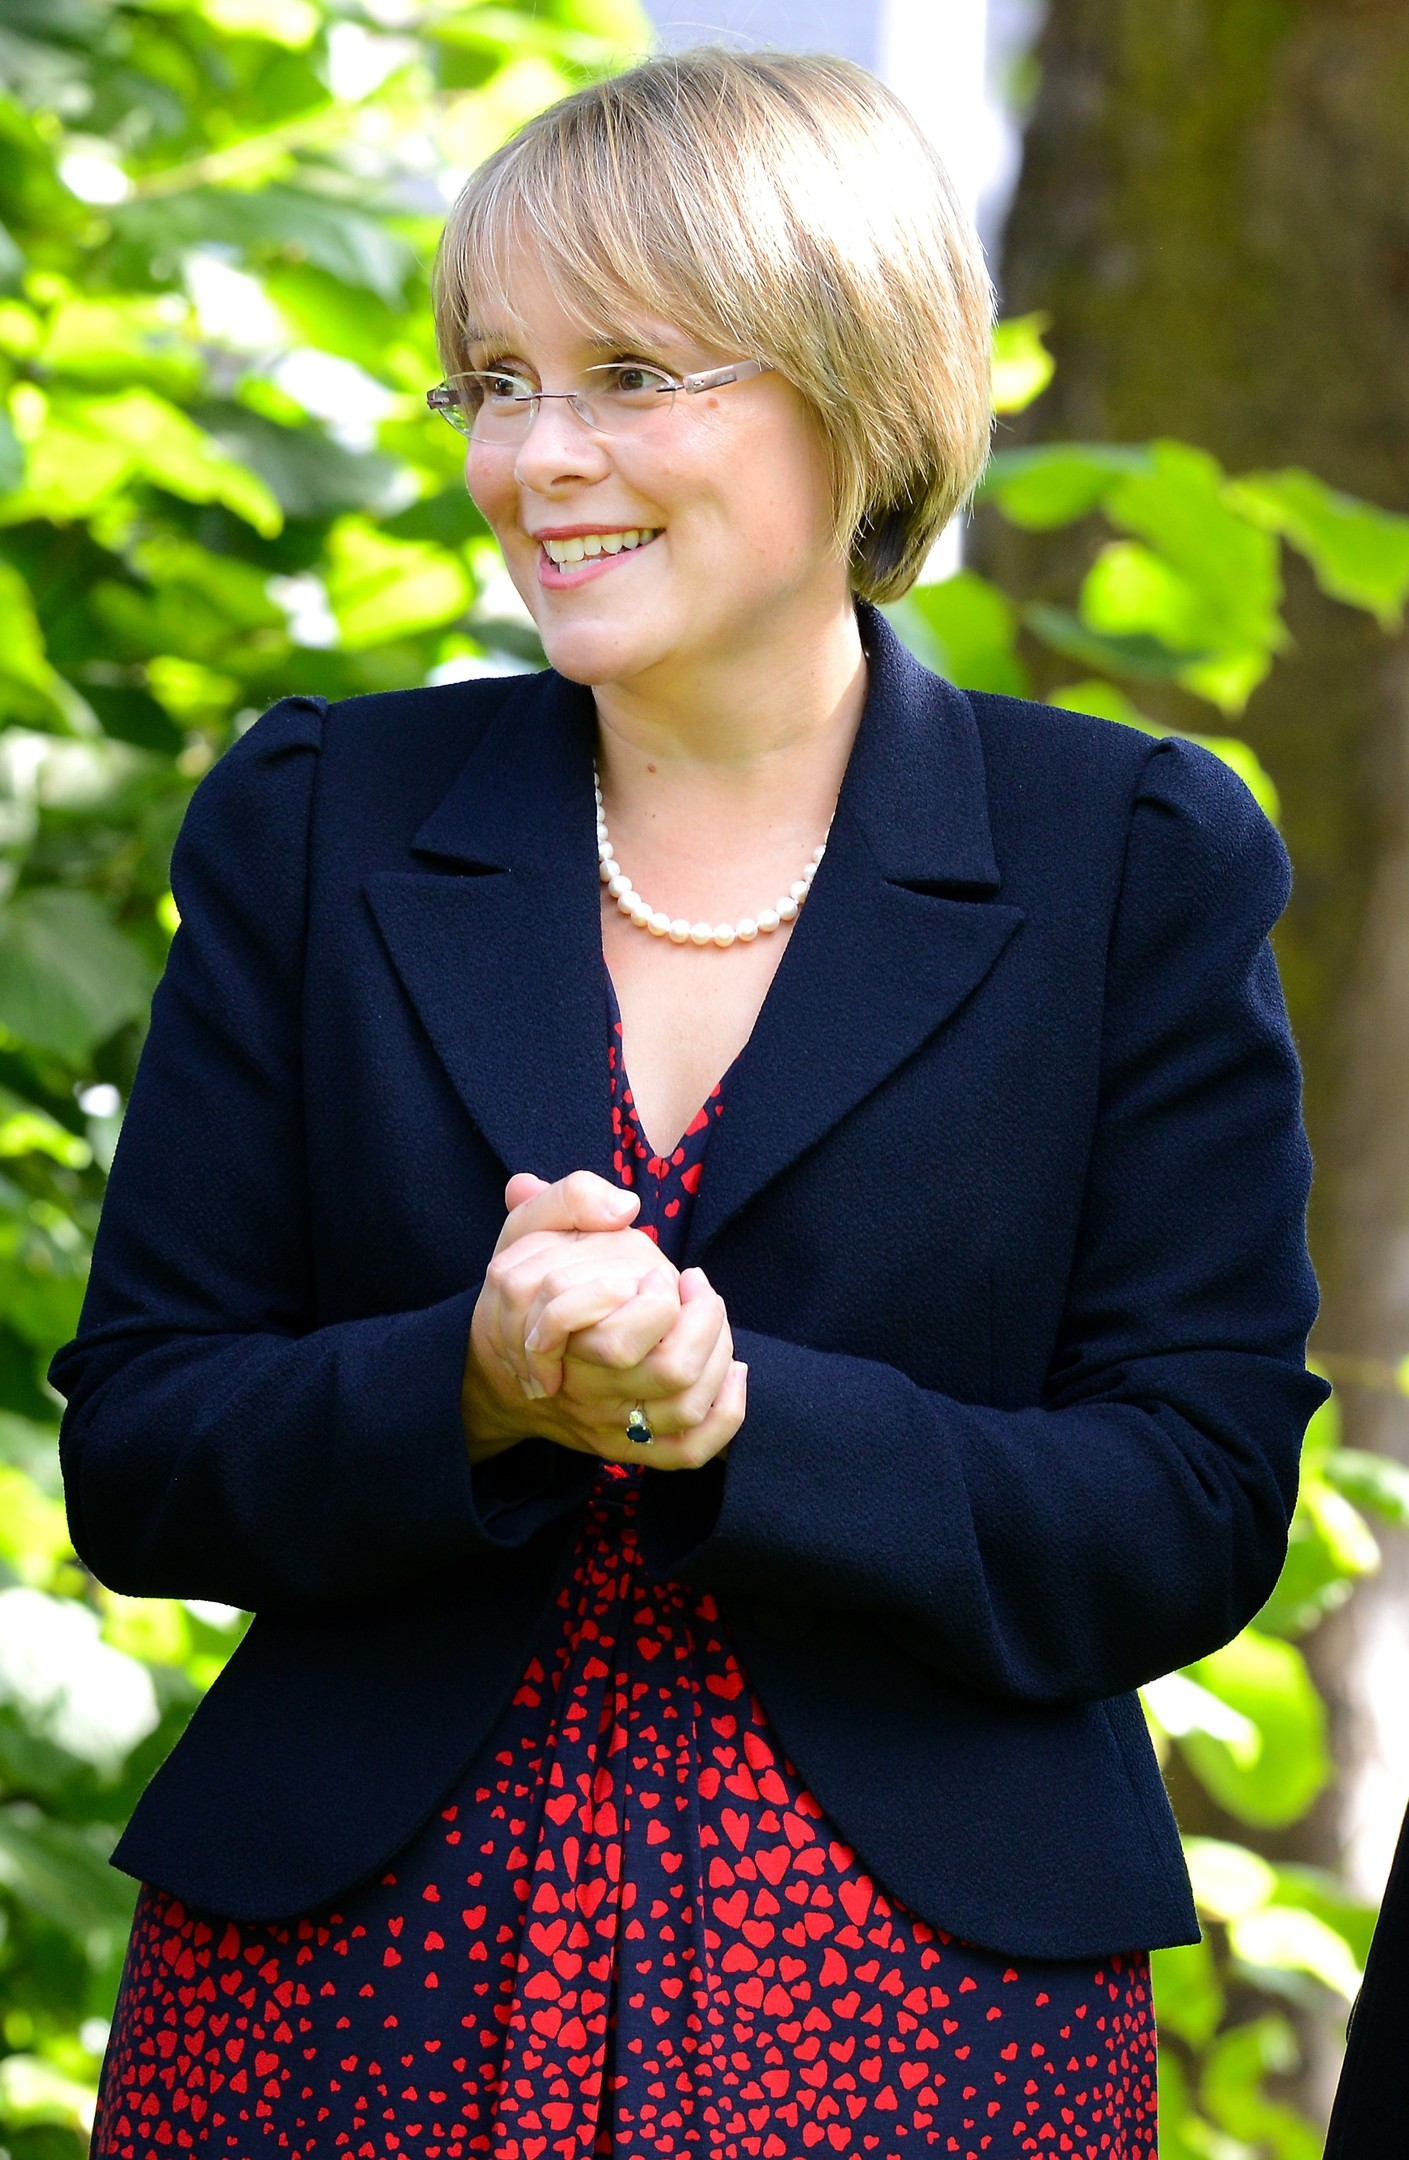 Anna Tomlinson, Headmistress of St Margaret's School for Girls